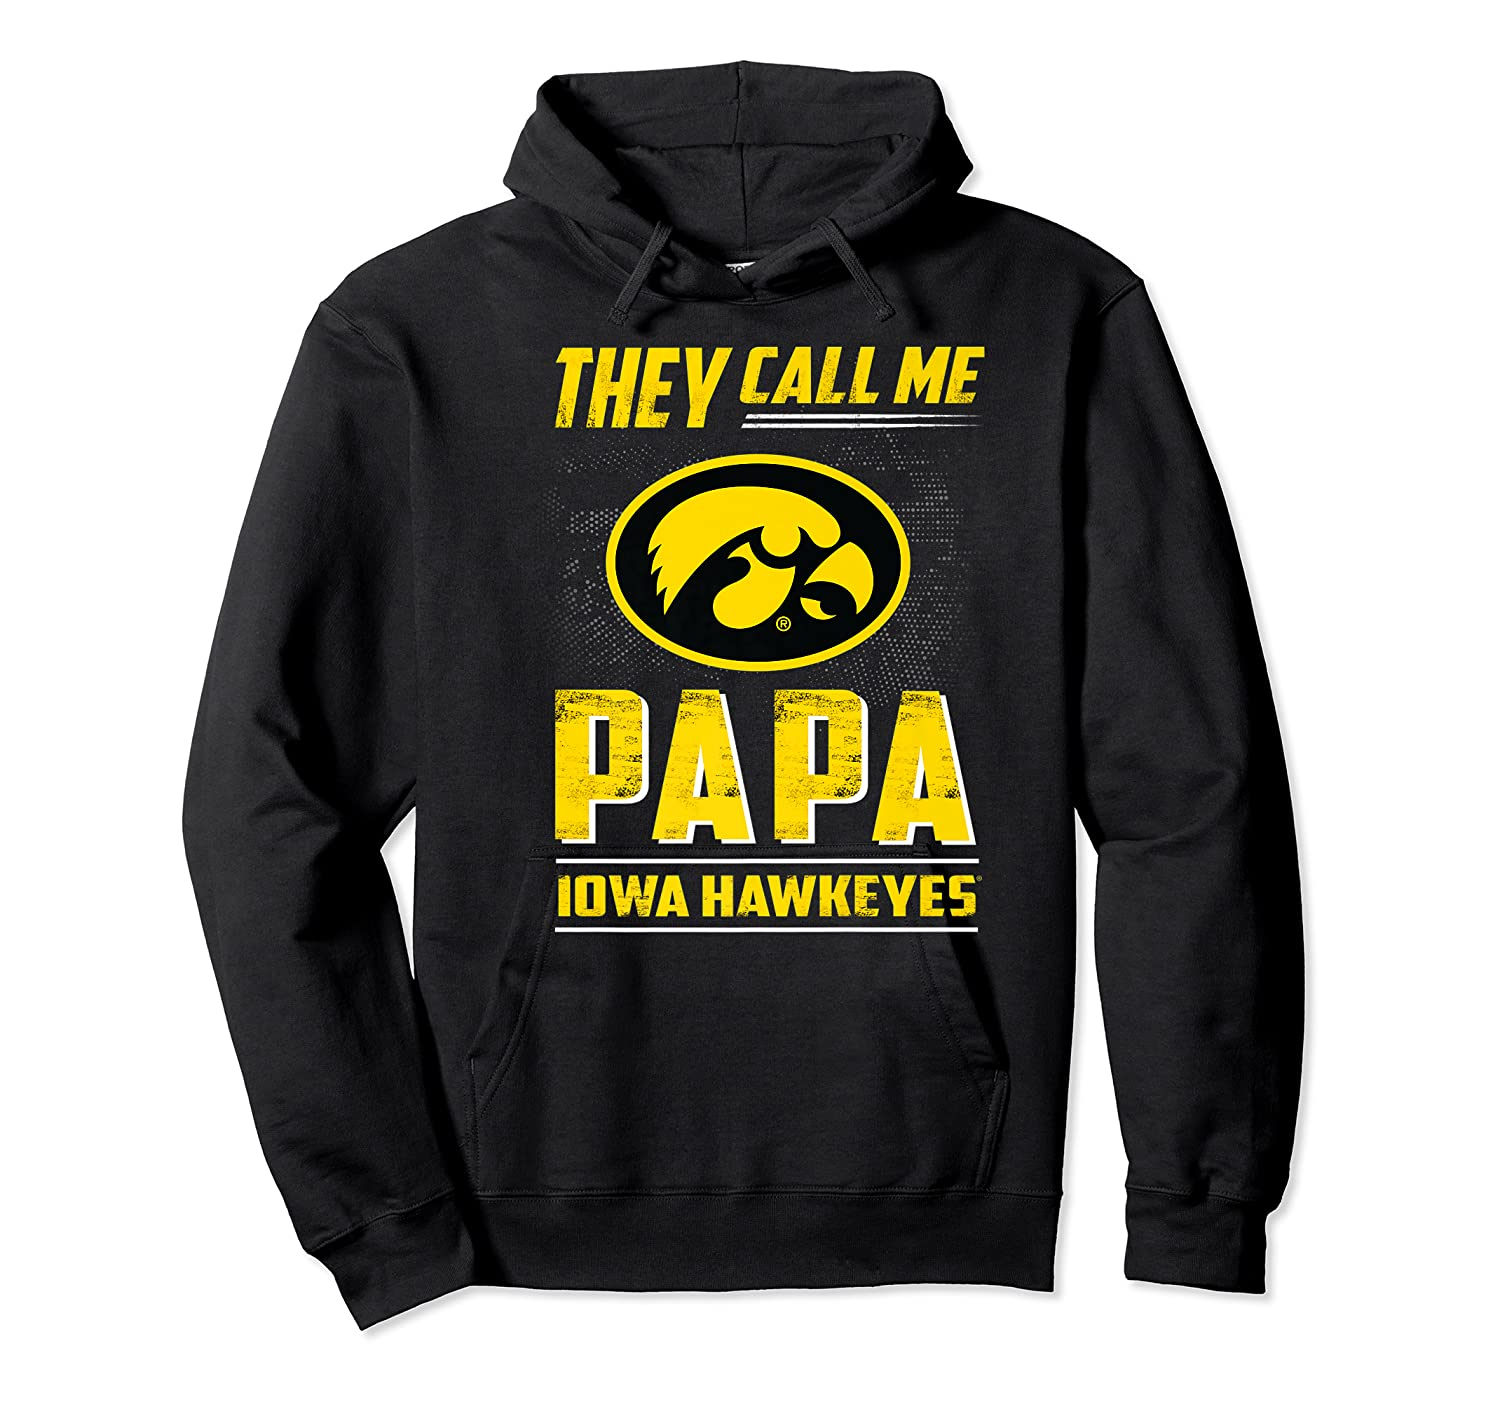 Iowa Hawkeyes They Call Me Papa T-shirt - Apparel Unisex Pullover Hoodie